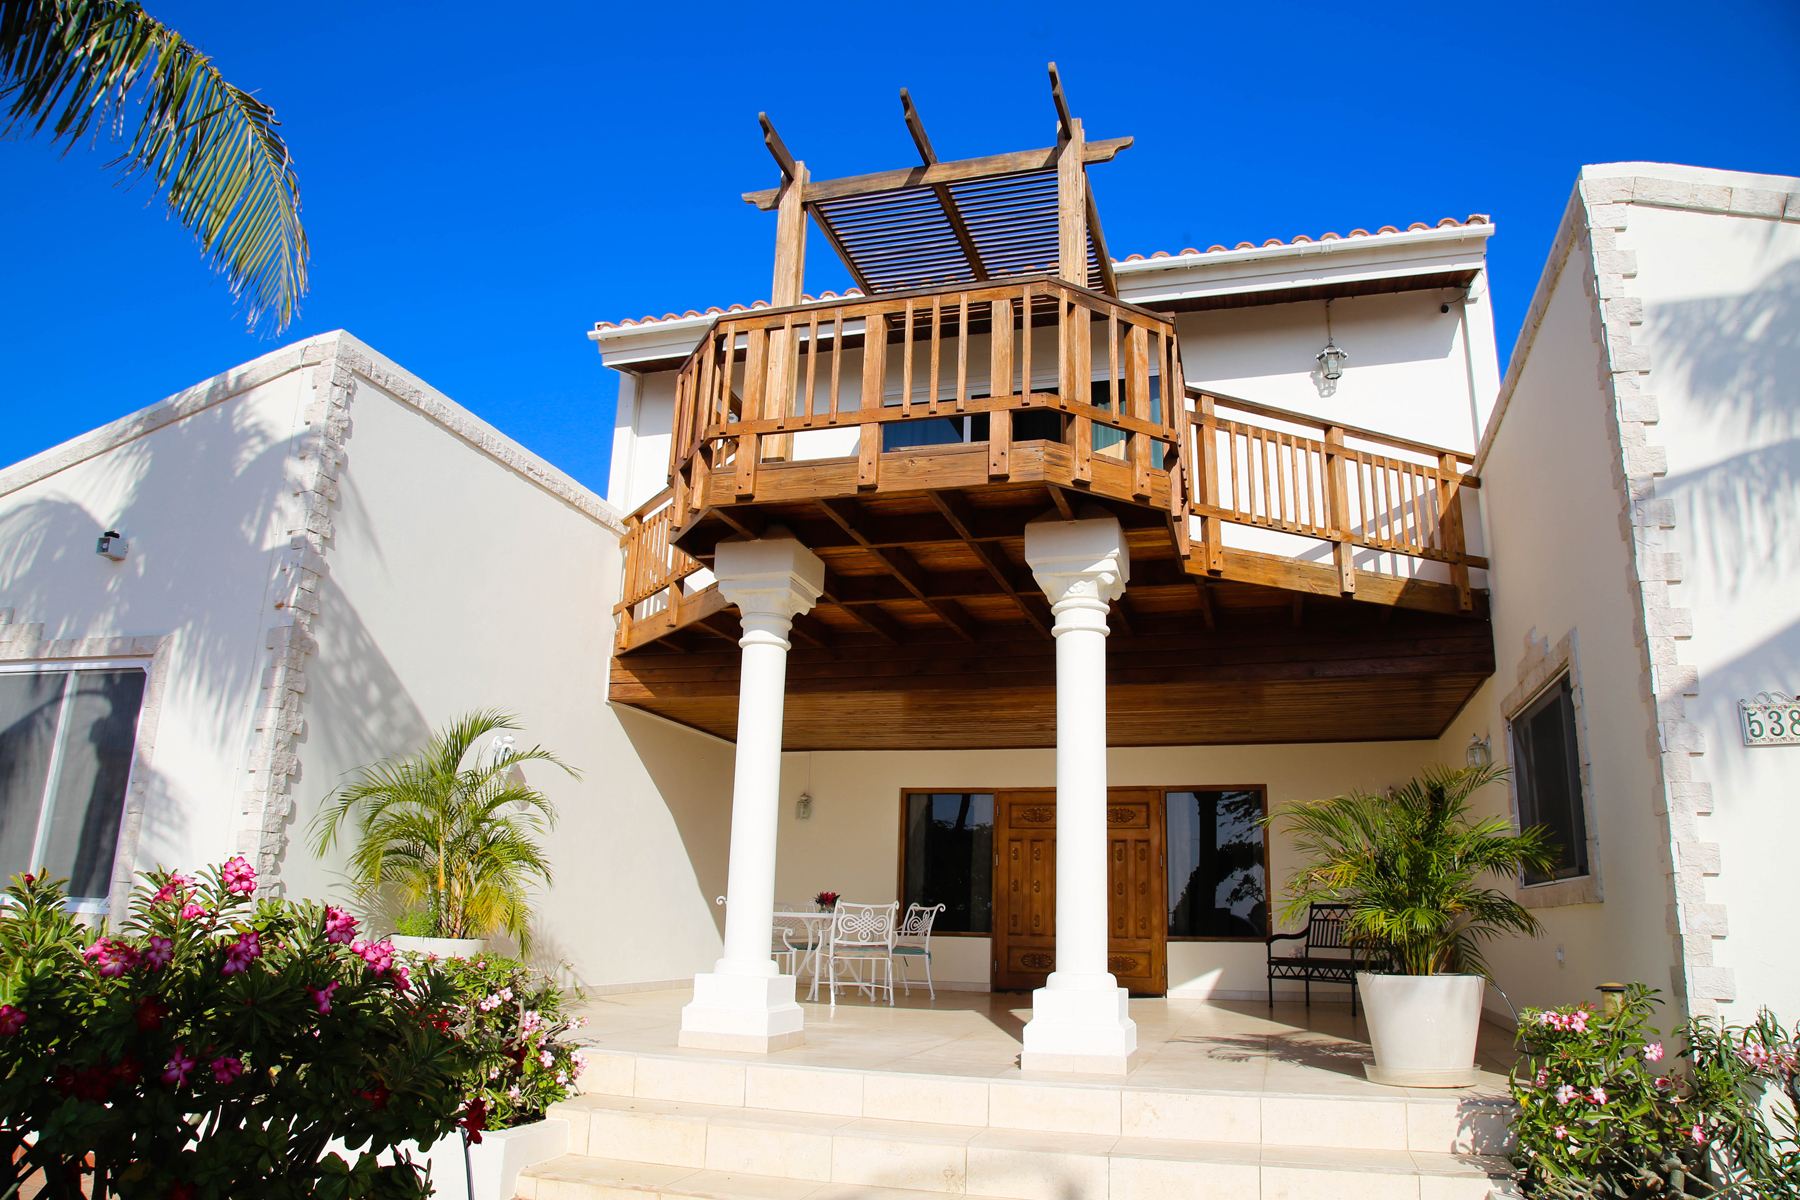 Single Family Home for Sale at Villa Catalina Malmok, Aruba Aruba